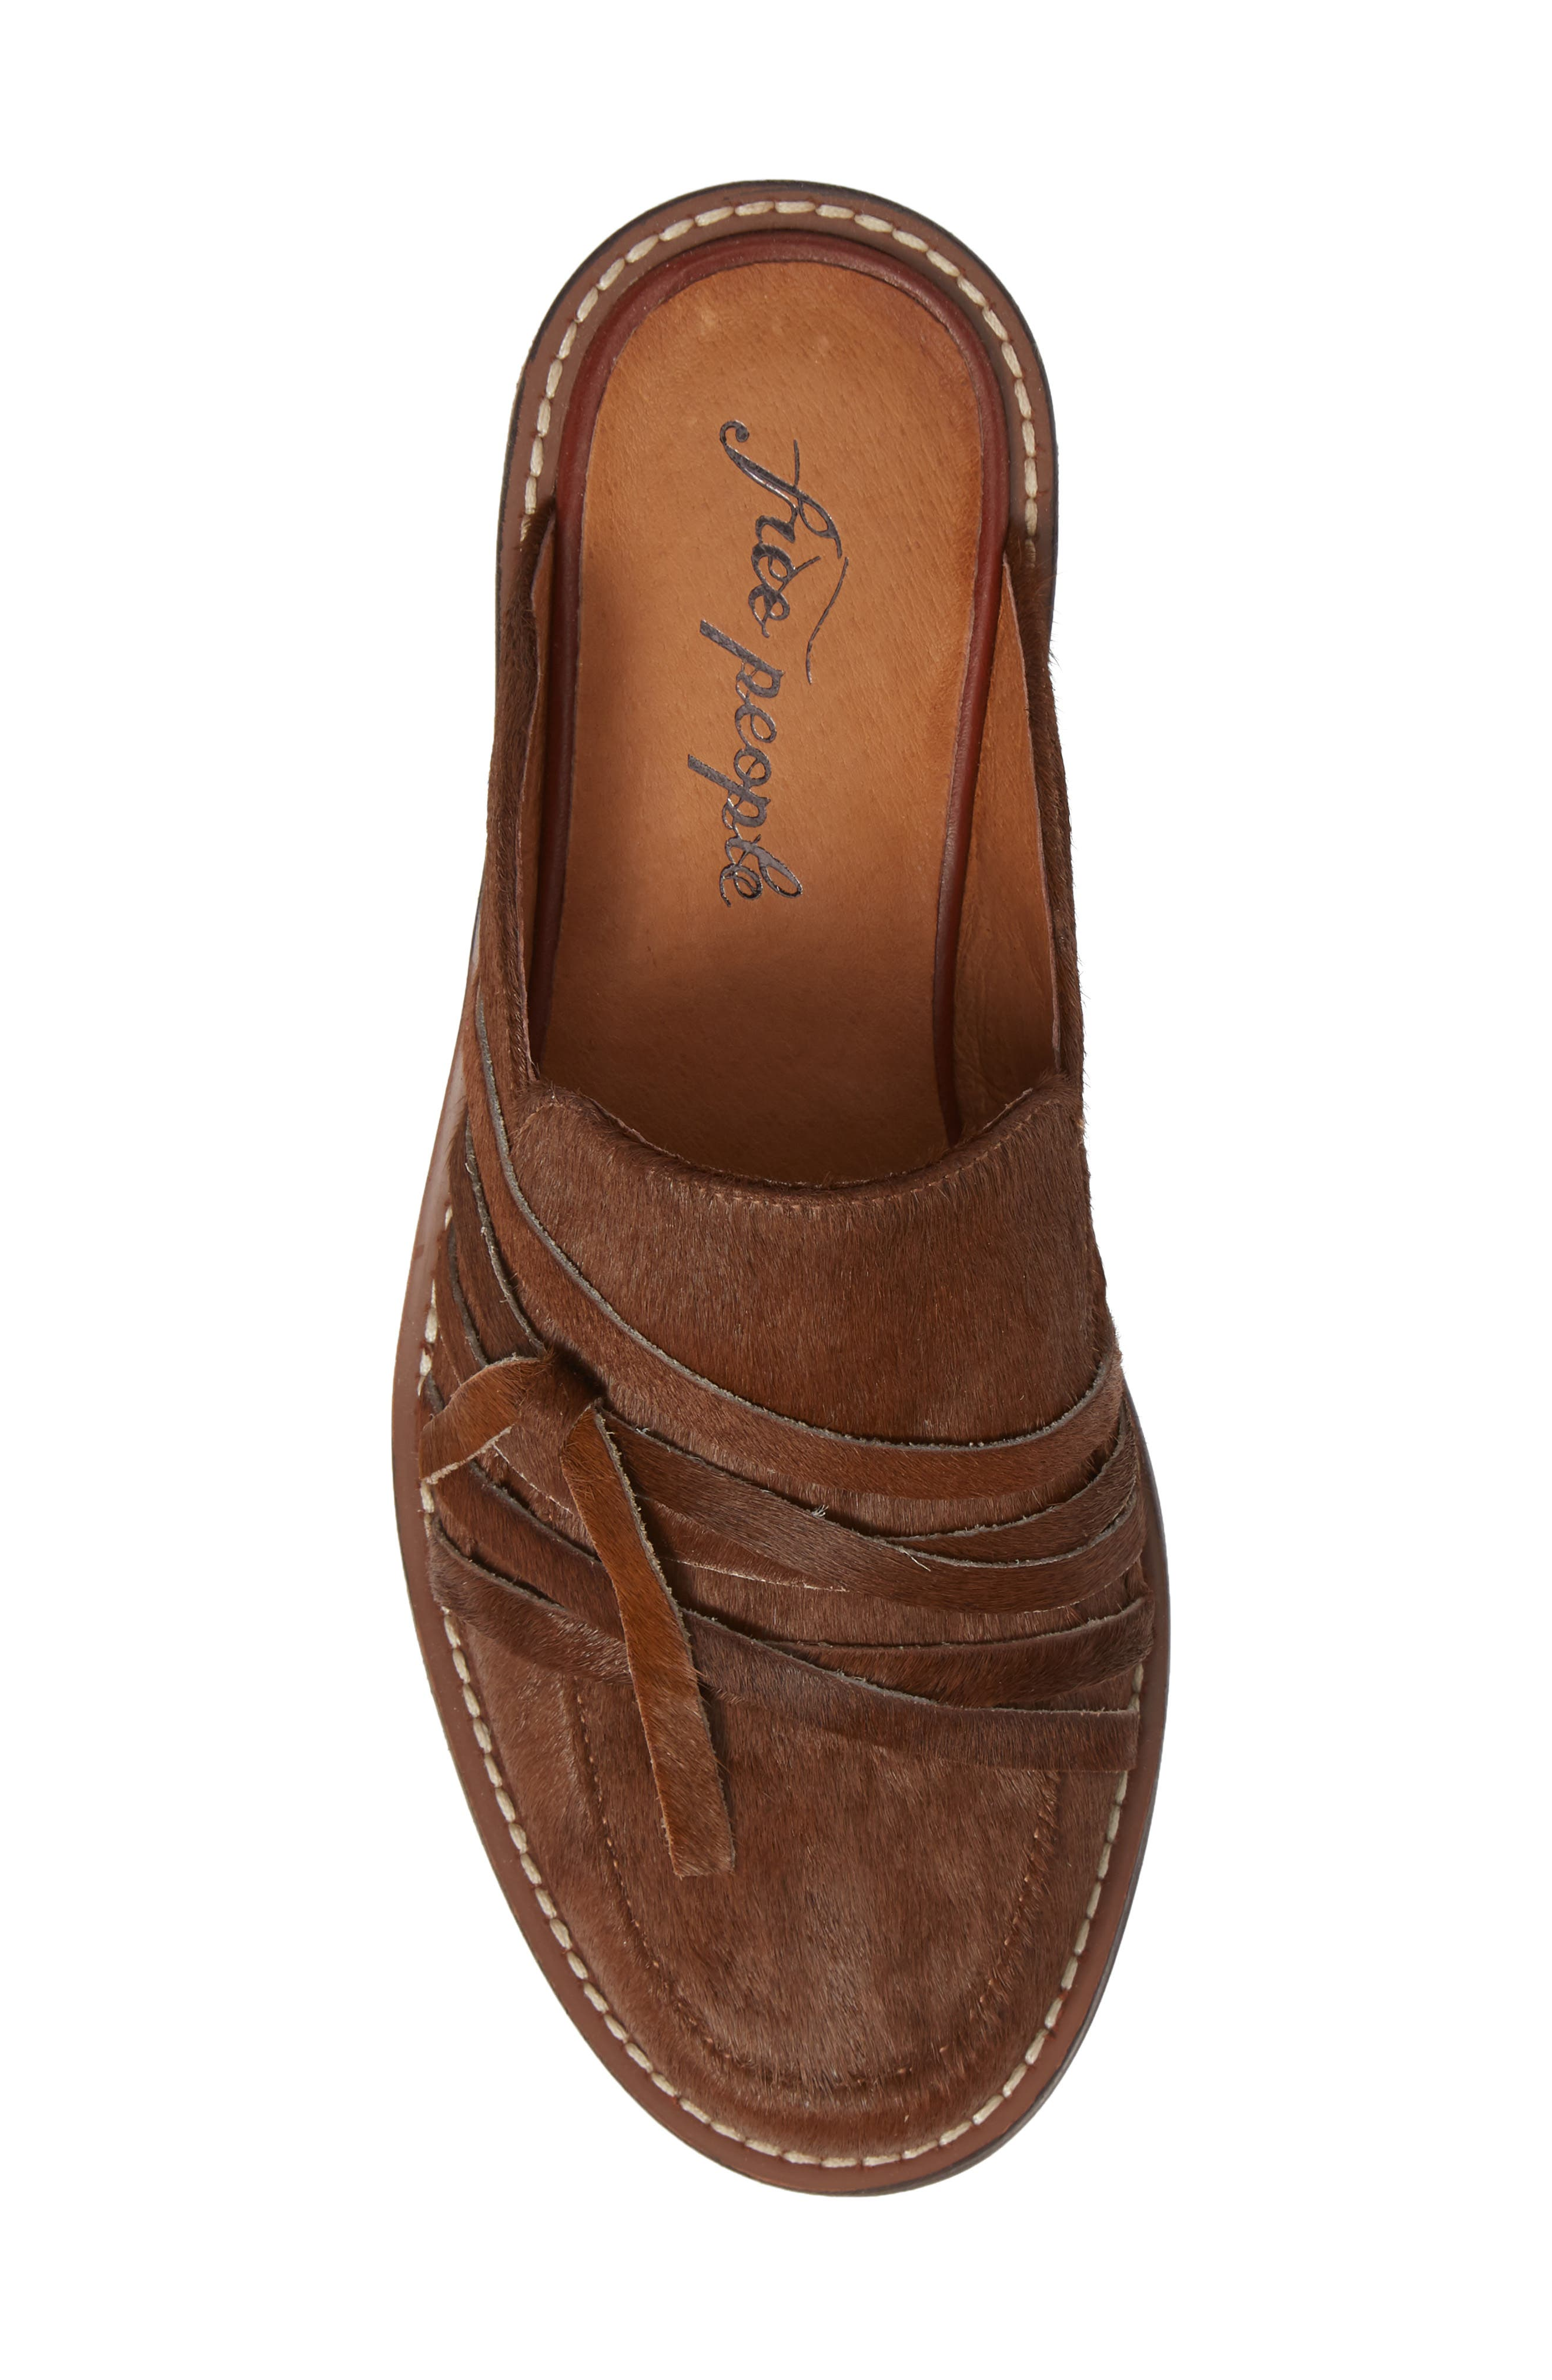 Saratoga Loafer Mule,                             Alternate thumbnail 5, color,                             COPPER CALF HAIR